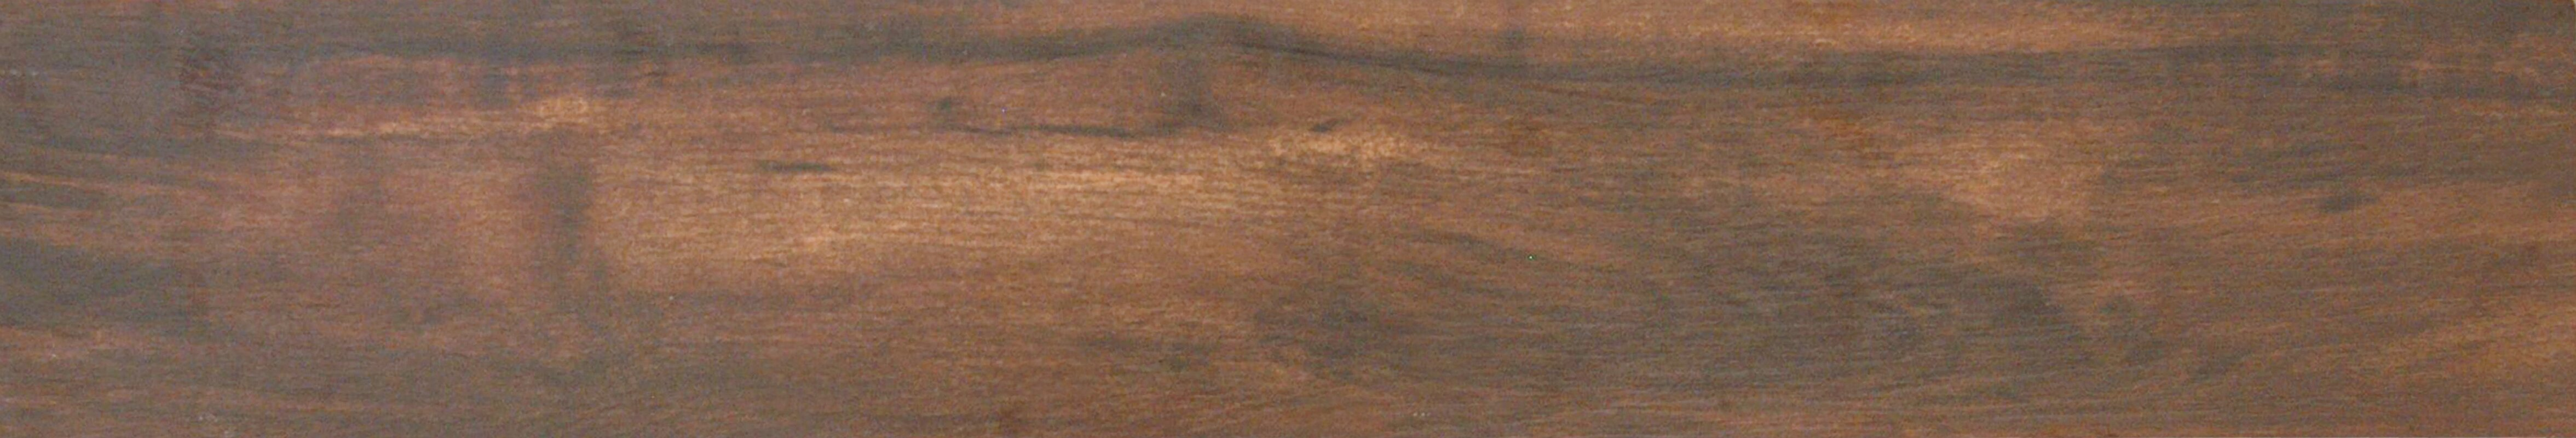 Sample Botanica Teak Porcelain Glazed Floor And Wall Tile In Textured